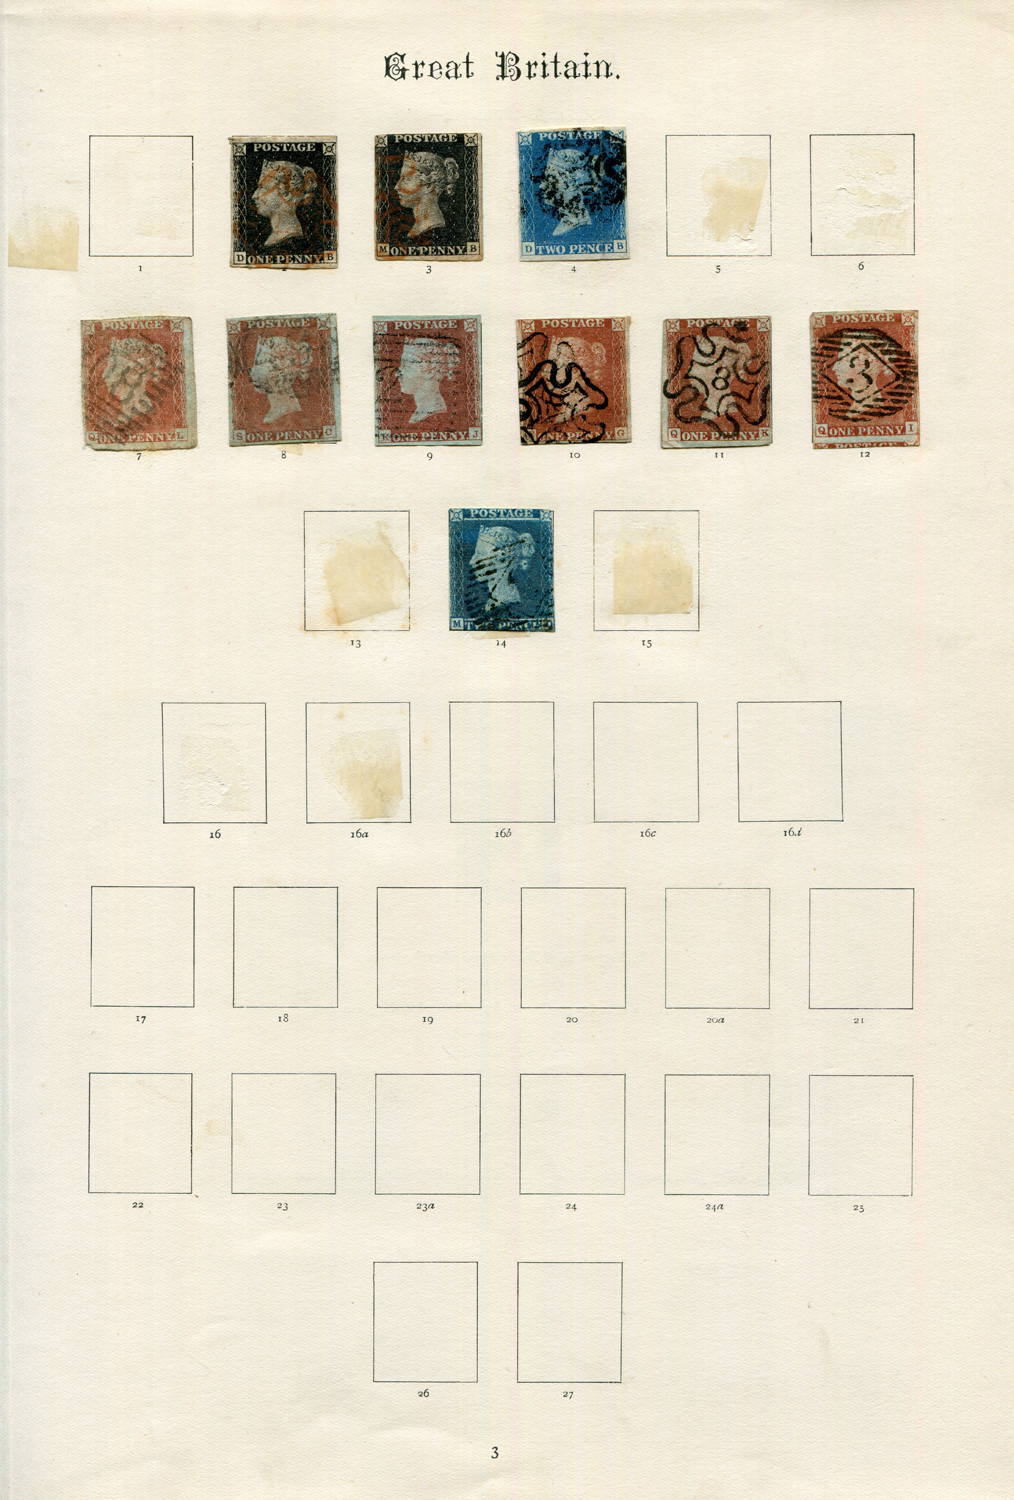 Lot 3059 - A collection of Great Britain stamps in two Windsor albums, another album, small stock book and some